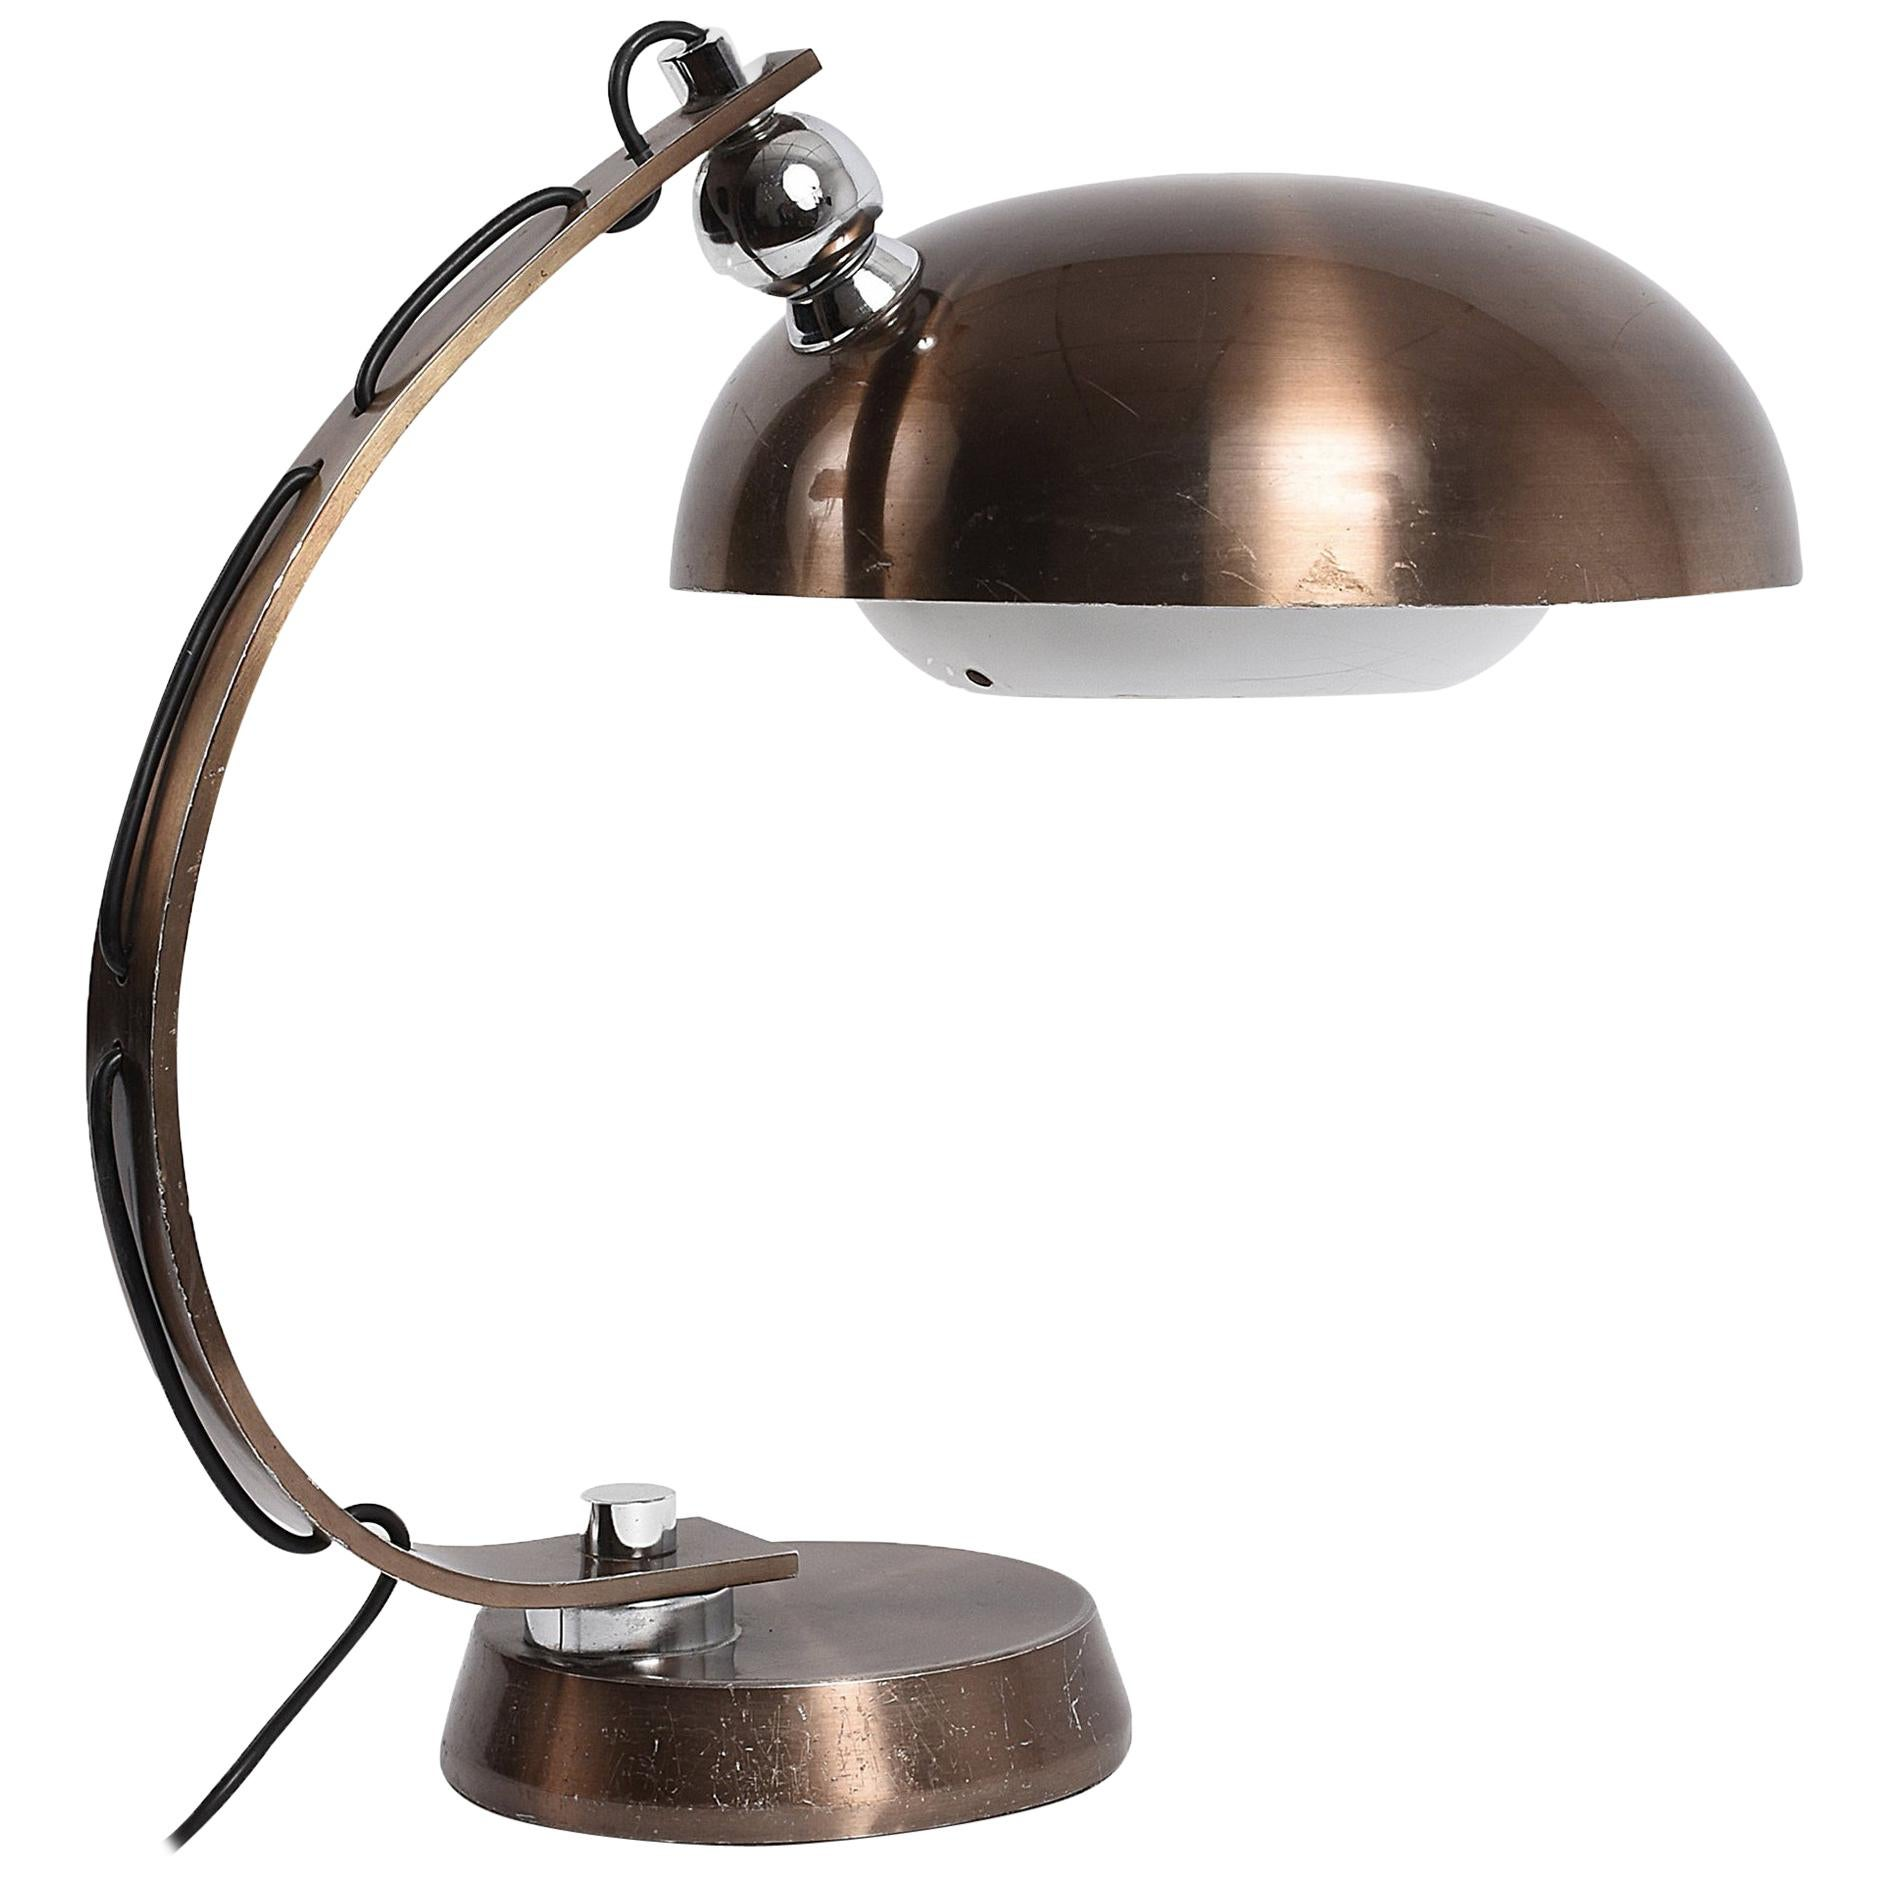 Brushed and Bronzed Aluminum Italian Table Lamp, 1970s Attributed to Arredoluce